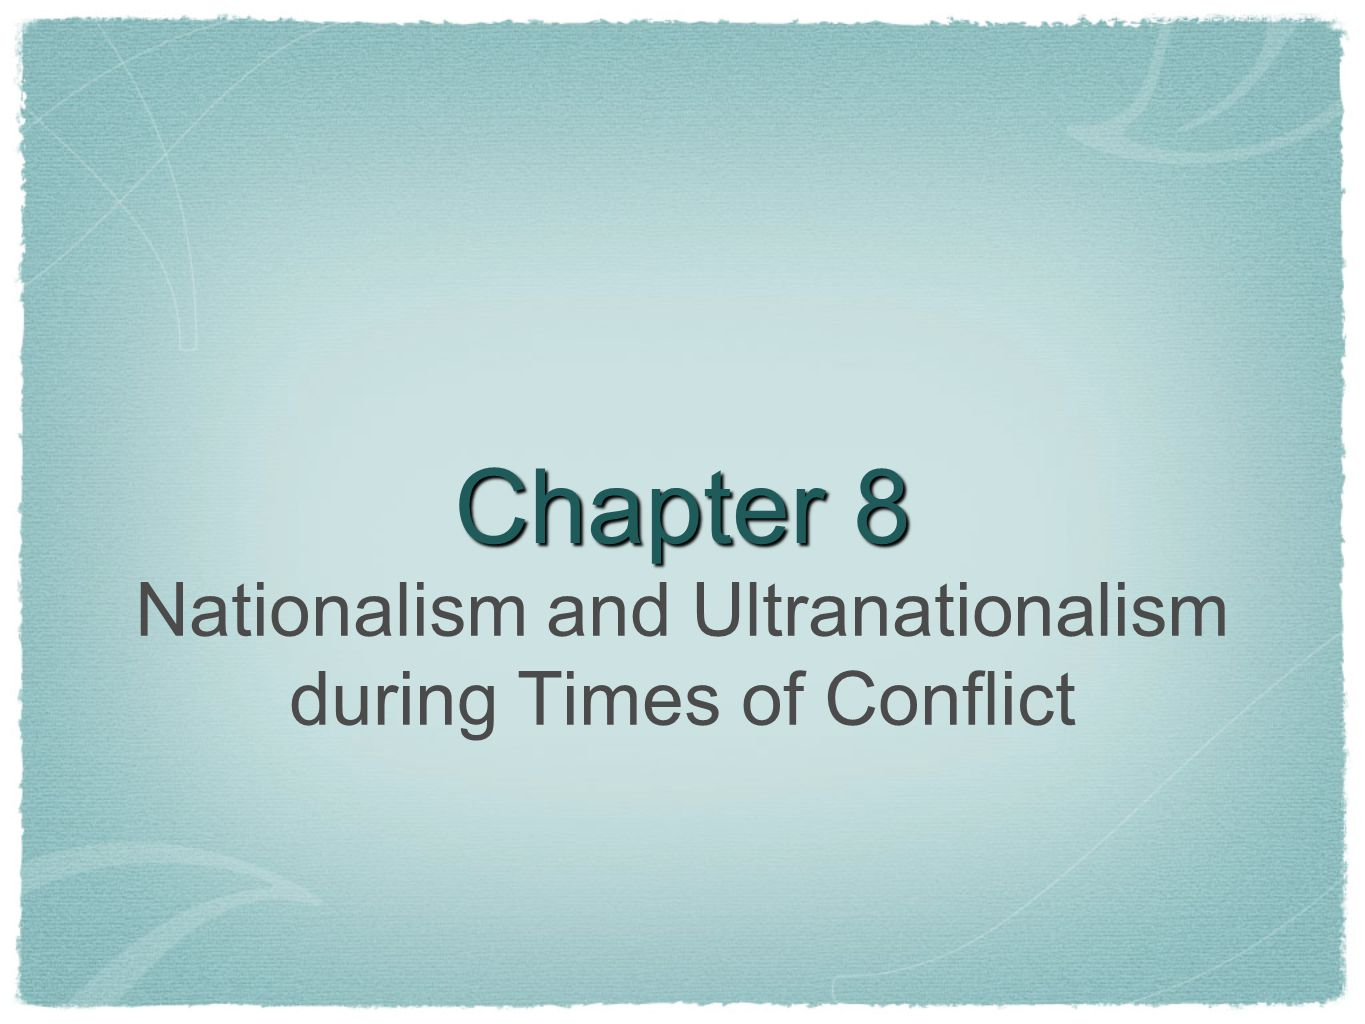 Chapter 8 Nationalism and Ultranationalism during Times of Conflict